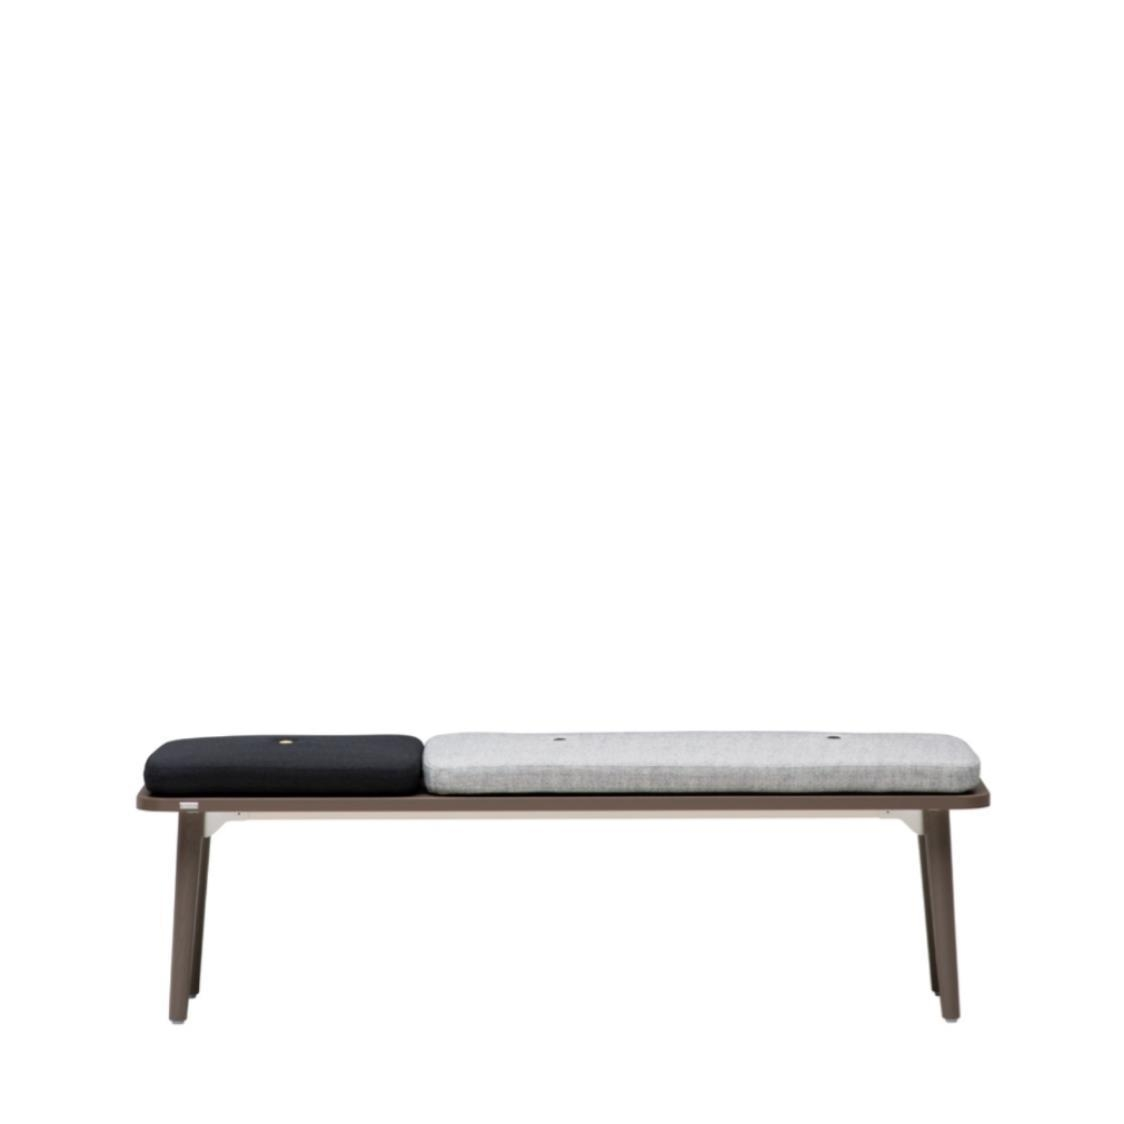 Iloom Libre Bench for 3 2  1 Cushion